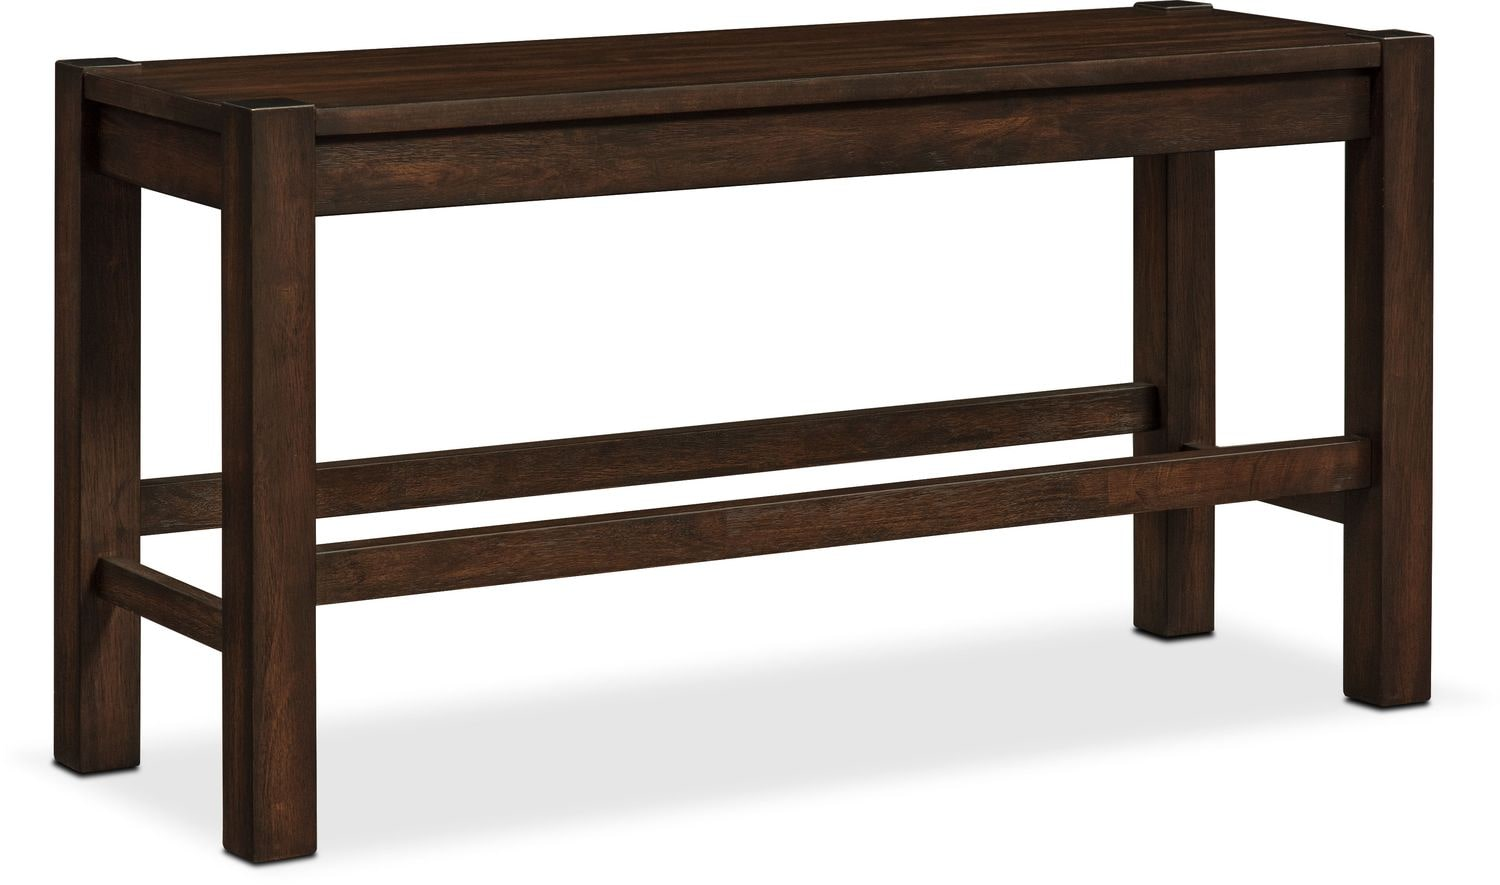 Accent and Occasional Furniture - Tribeca Counter-Height Bench - Tobacco